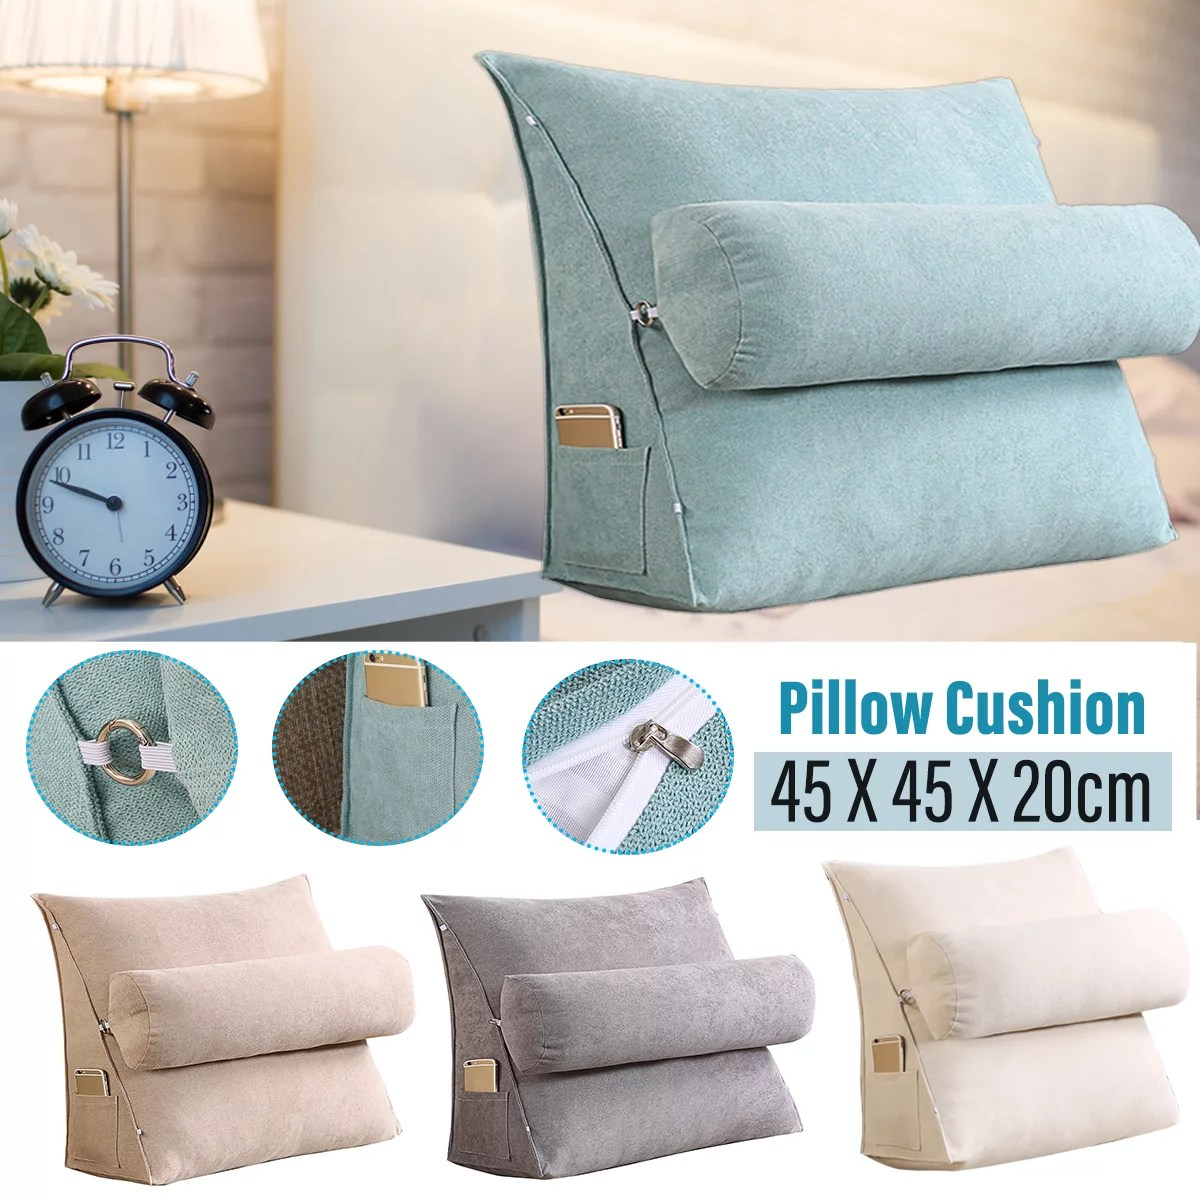 17 7in reading relax pillow bed wedge pillow 3 heights adjustable back support pillow adult backrest lounge cushion with pockets back support for